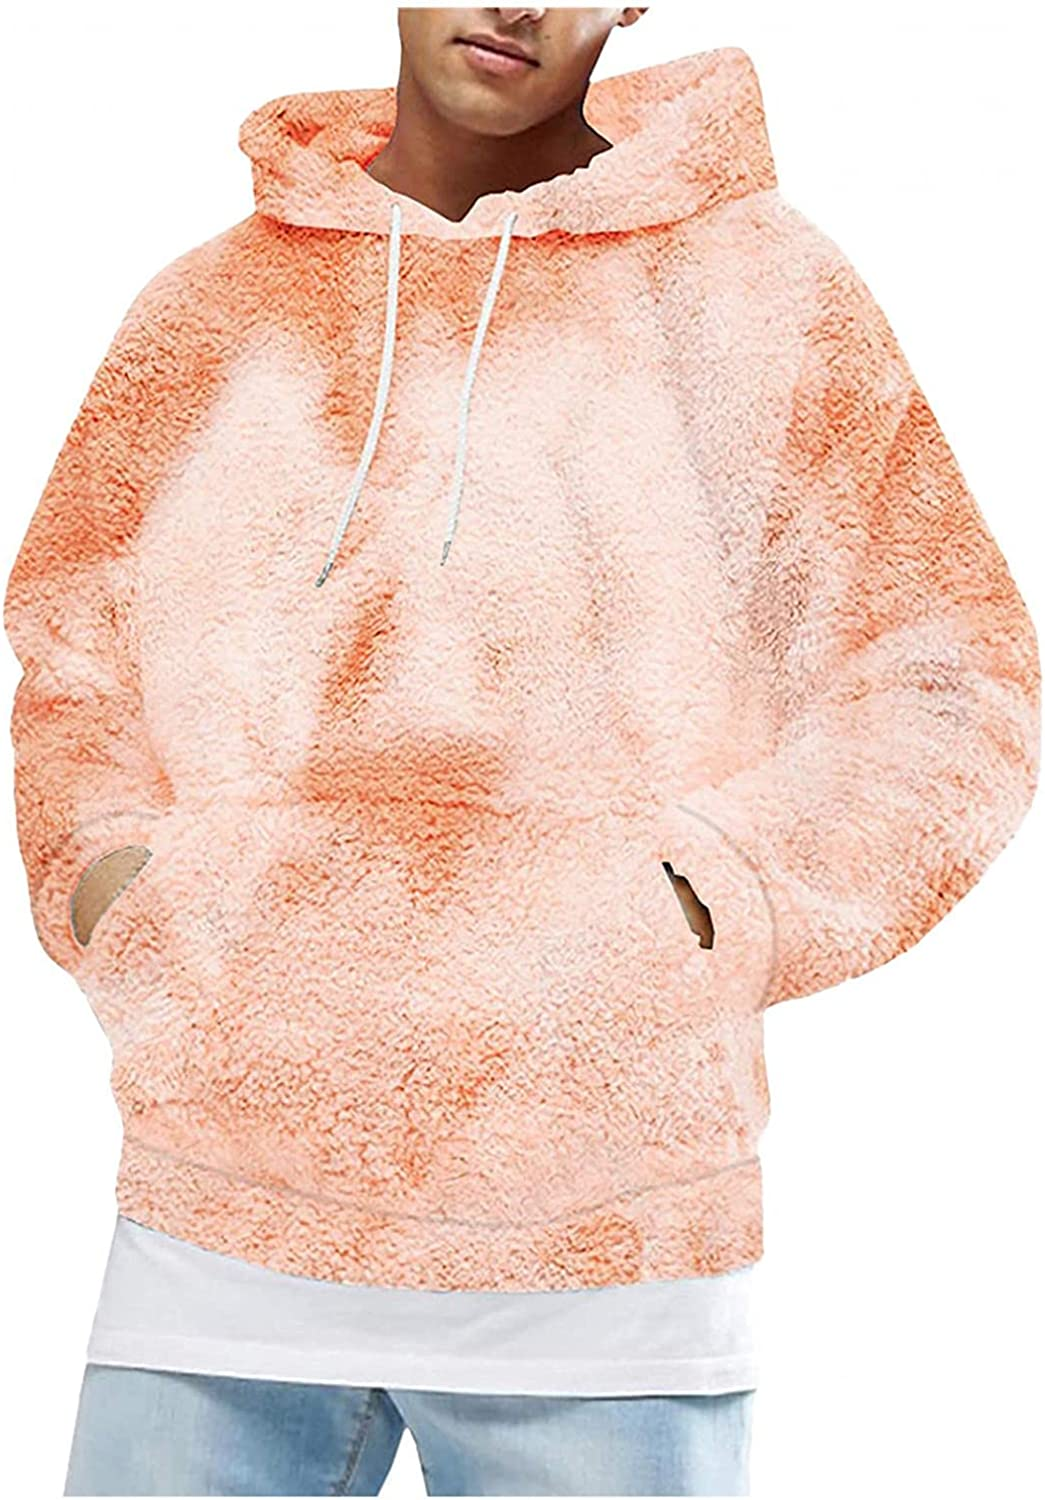 Burband Mens Tie Dye Fuzzy Sherpa Hoodies Cozy Loose Pullover Sweatshirts with Hood Solid Color Unisex Fluffy Teddy Coats